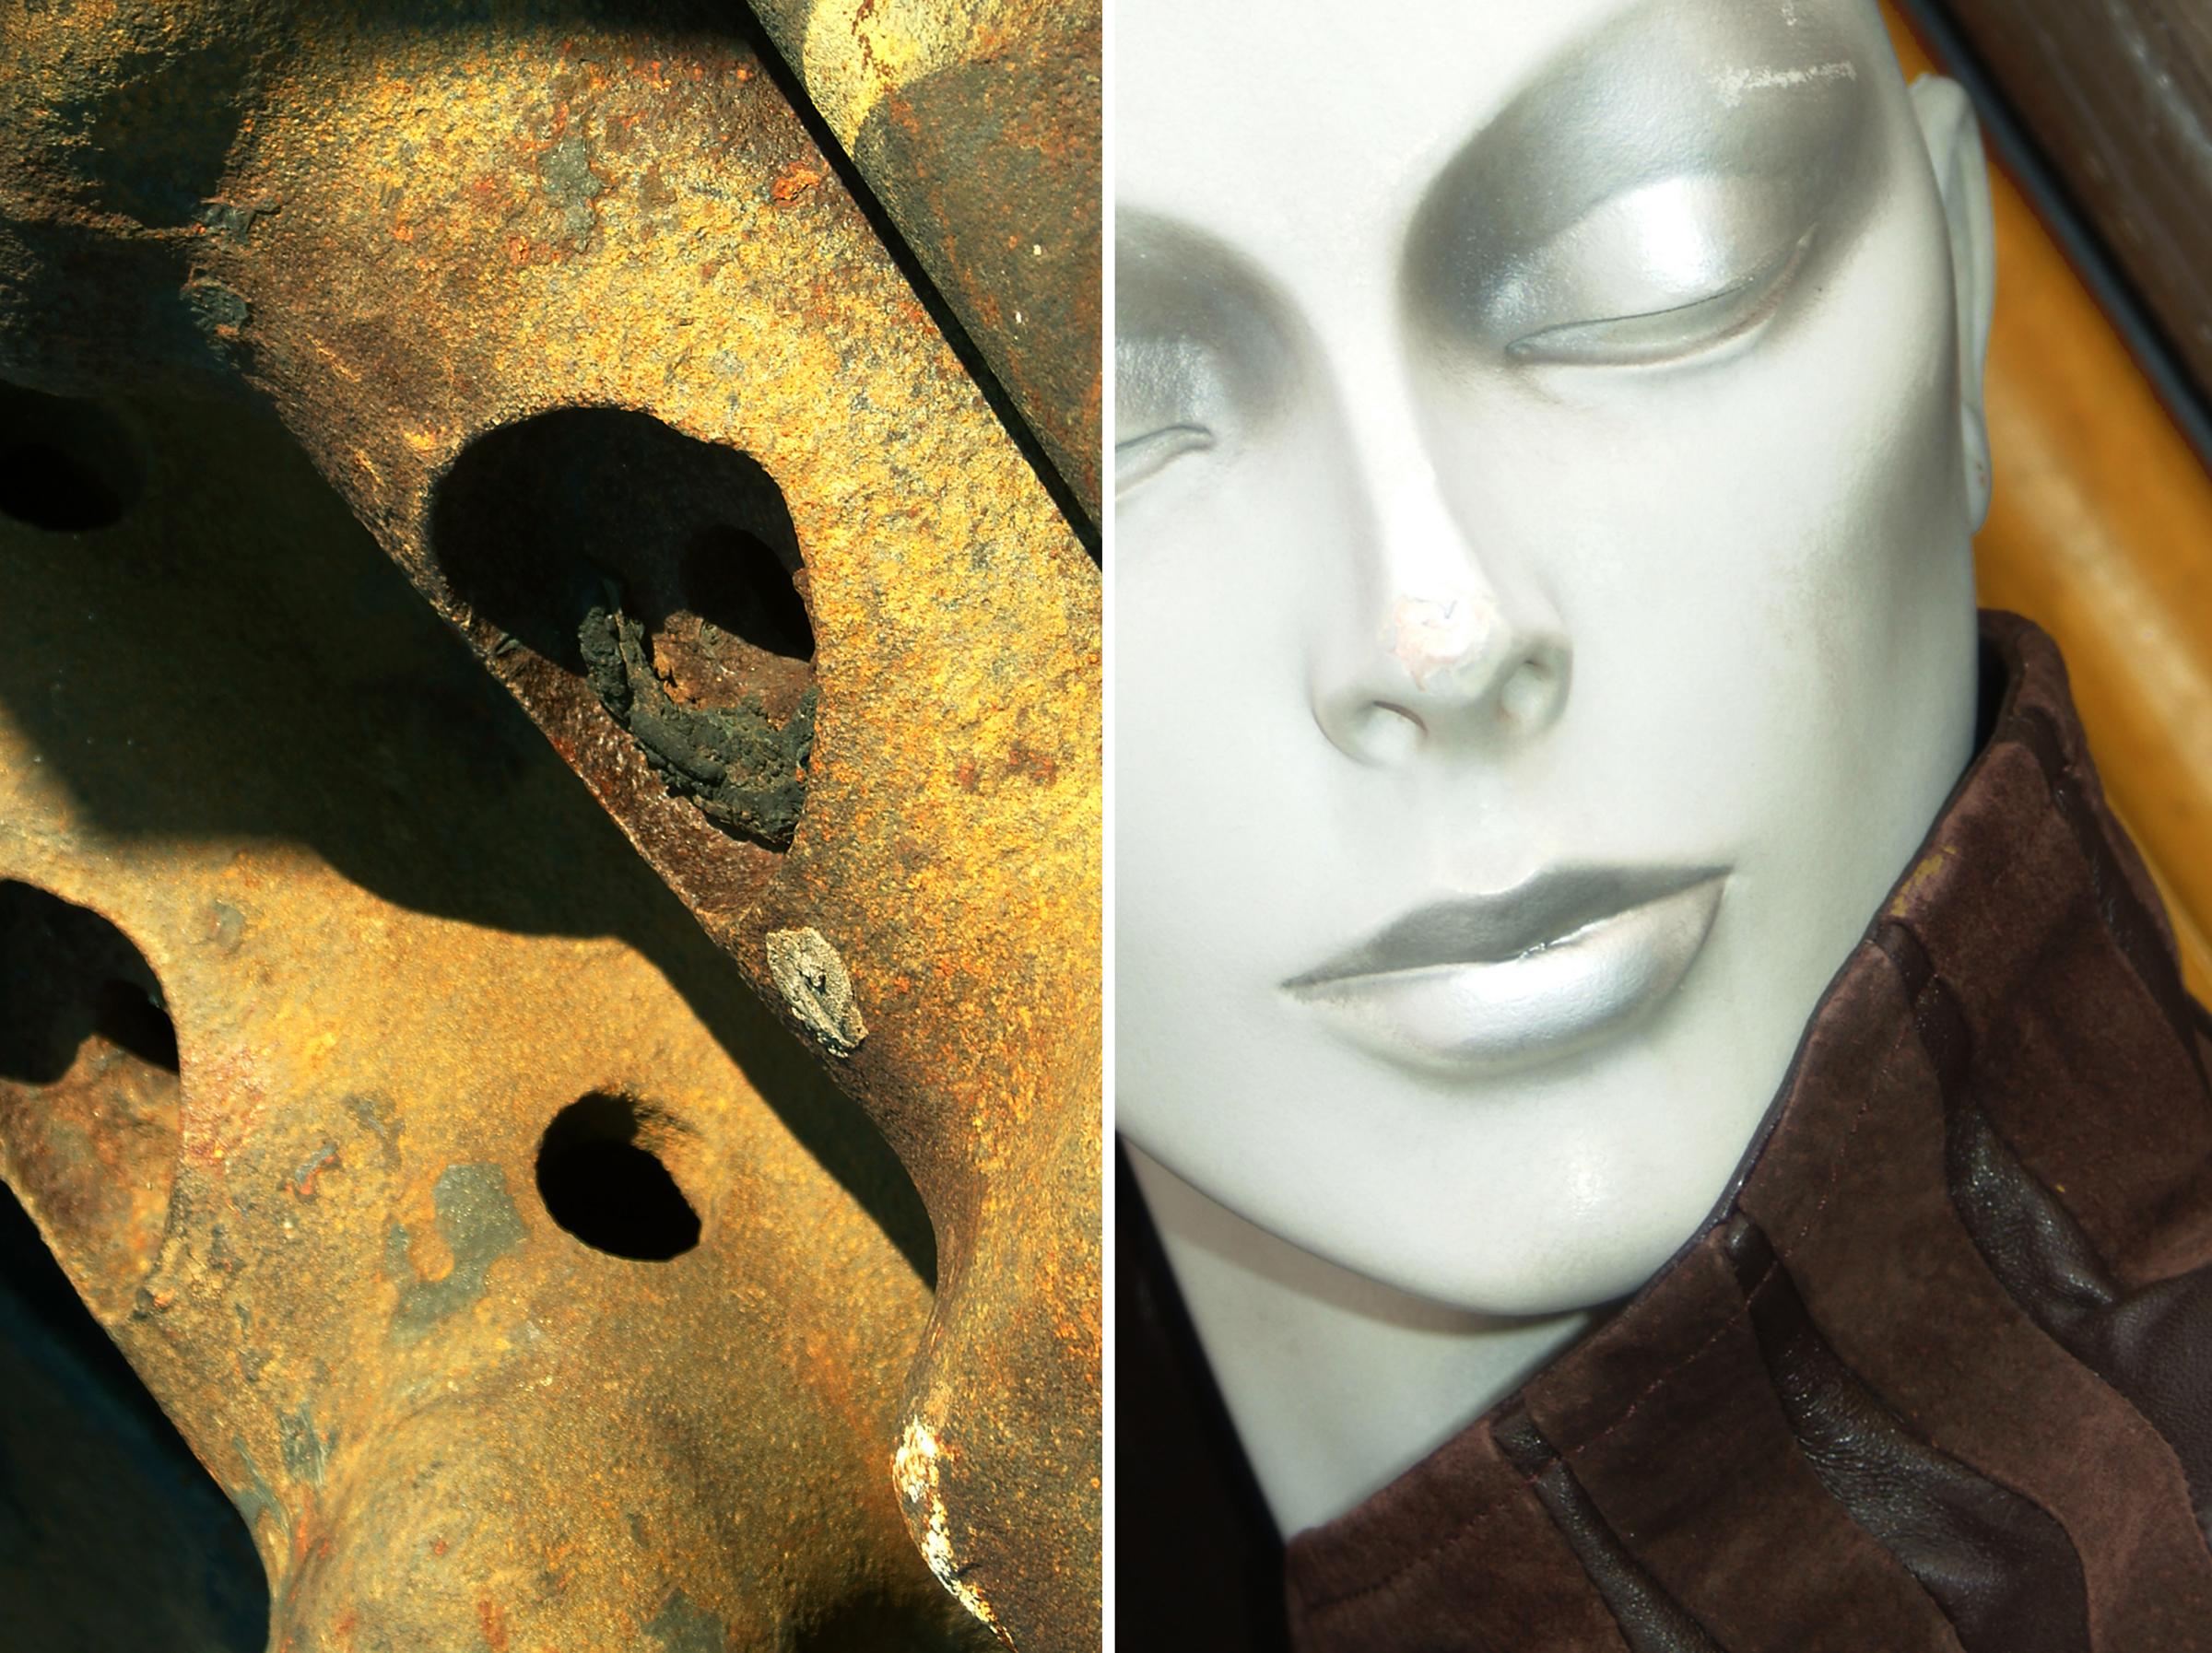 Diptych 27 brown jacket and rusted pipes.jpg